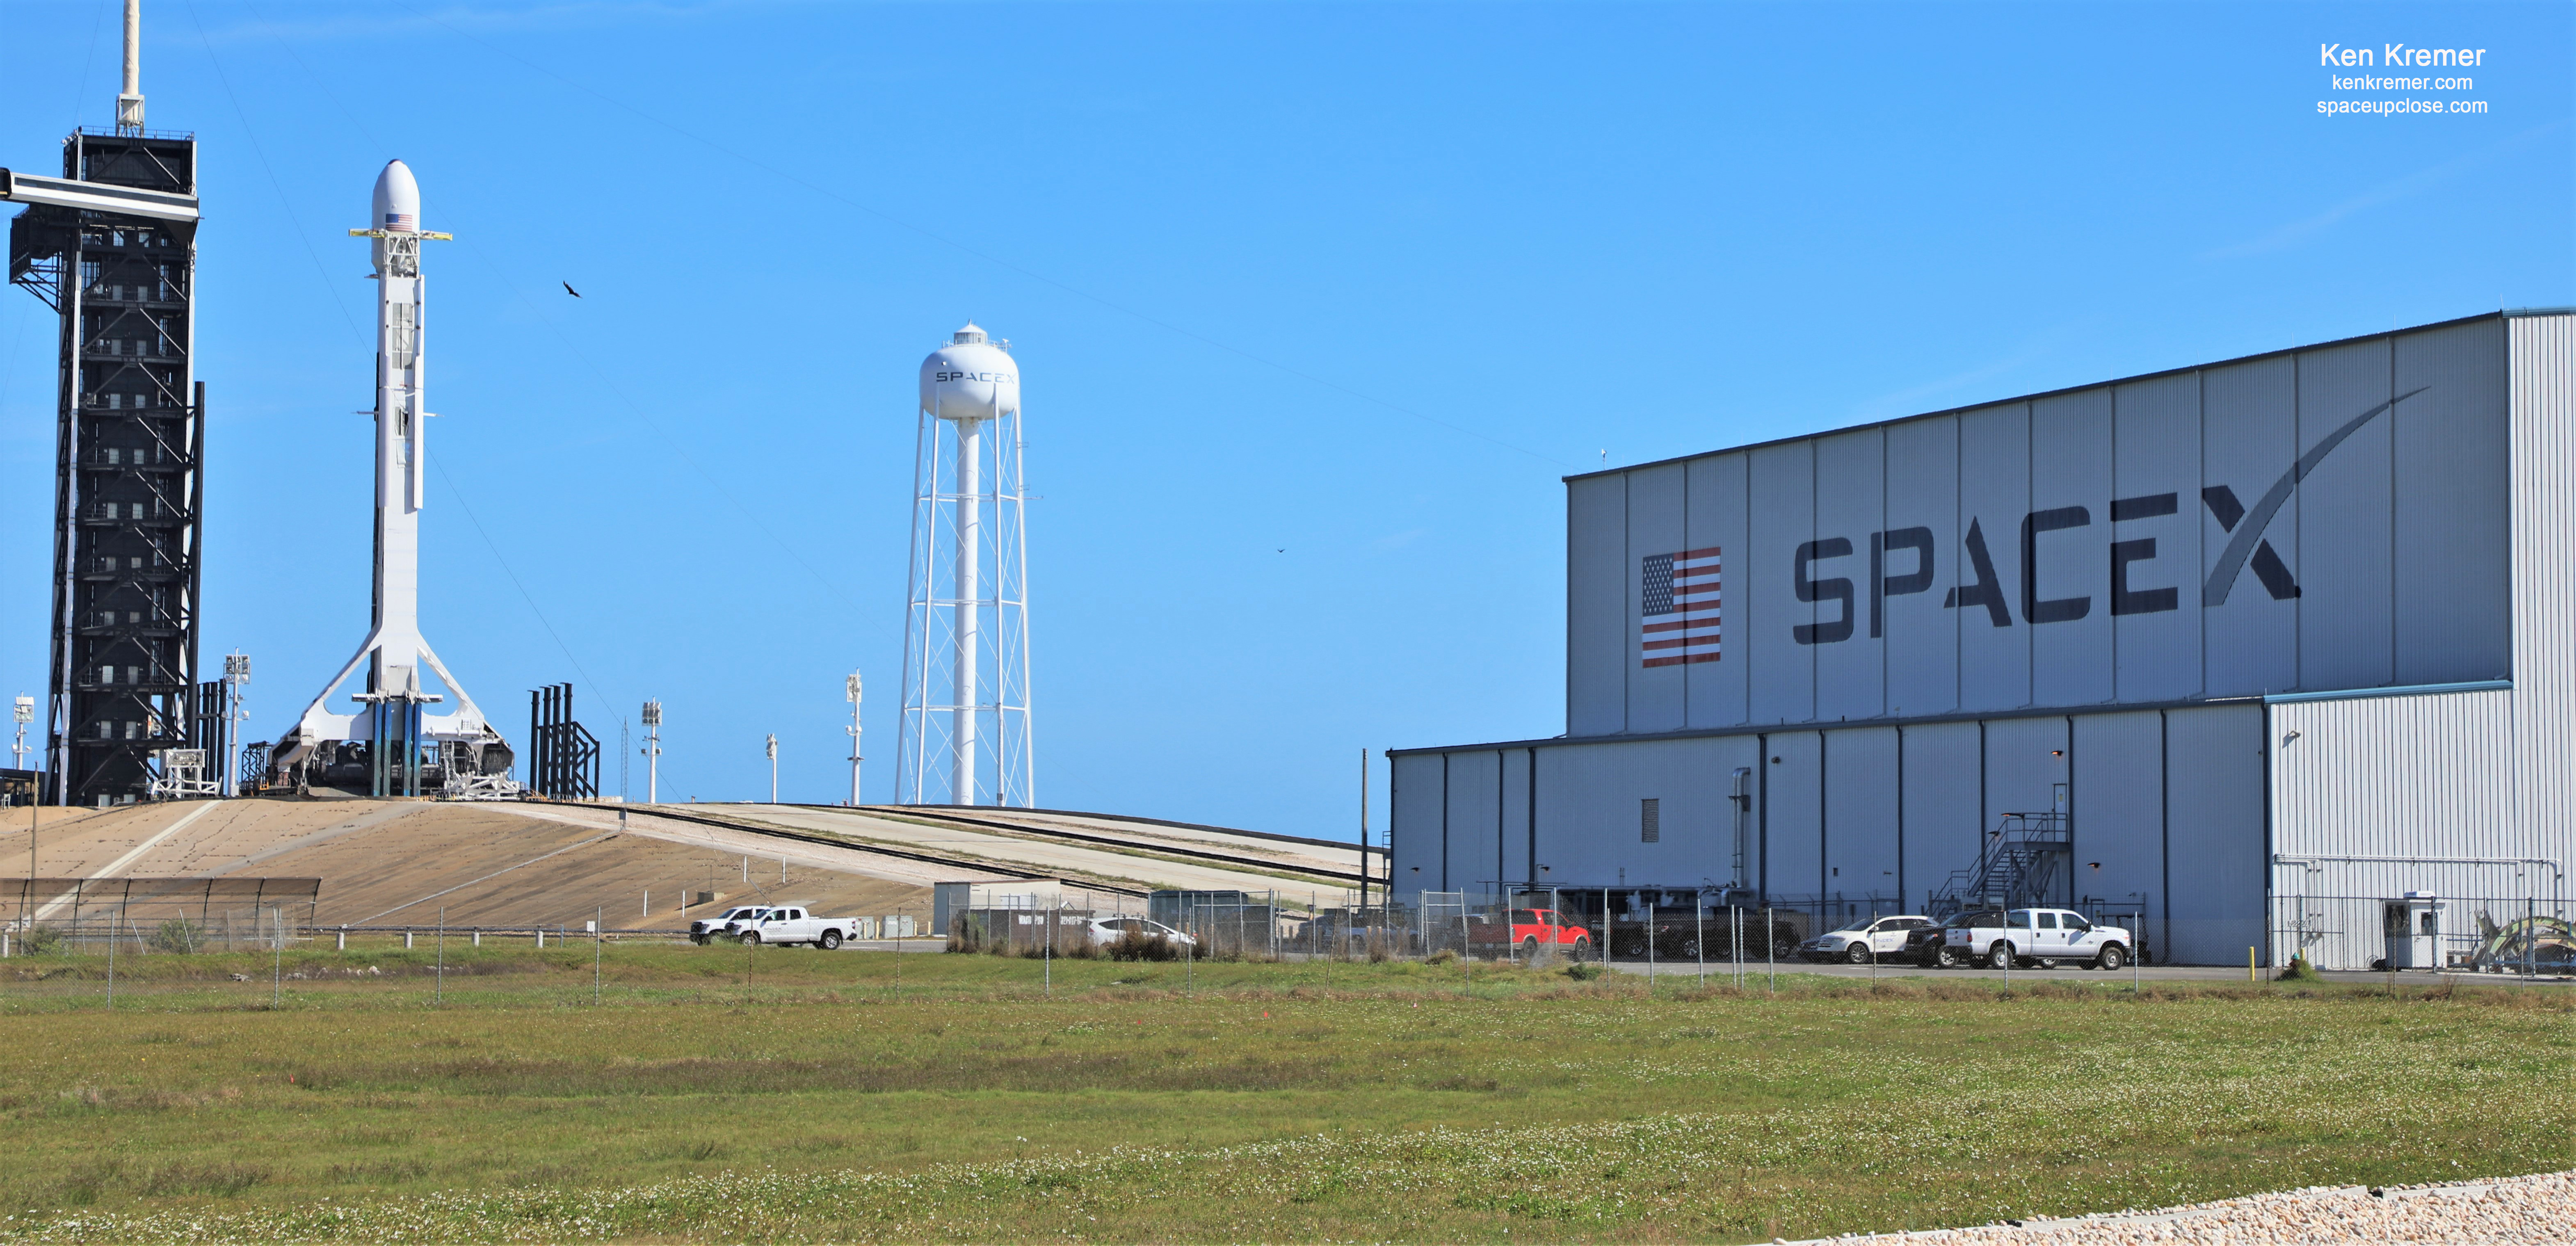 SpaceX Poised for Liftoff of 1st 5th Launched Falcon 9 on Starlink Mission Sunday Morning March 15:  Watch Live/Pad Photos